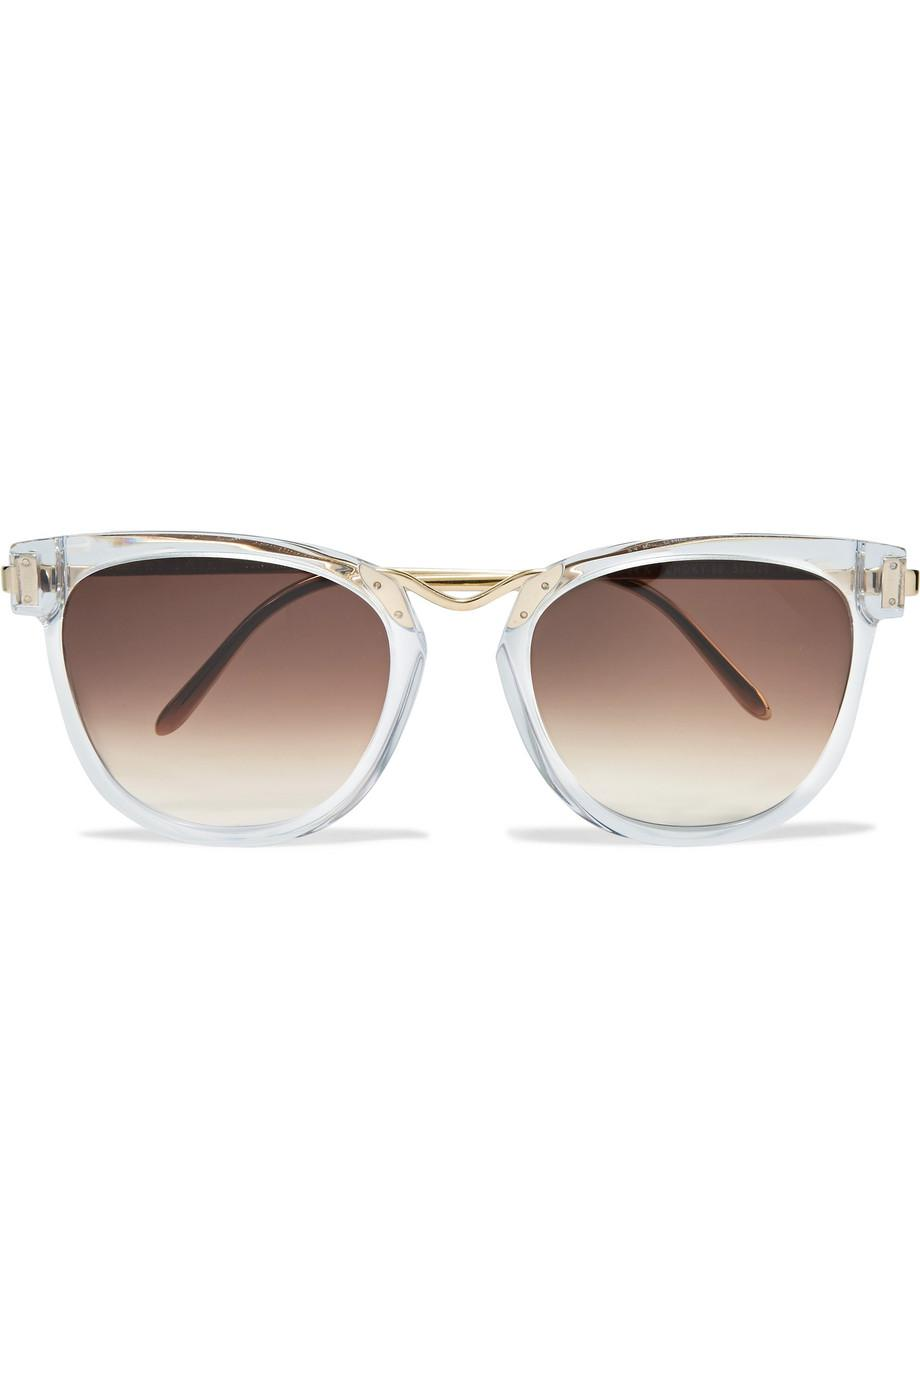 Cat-eye Two-tone Acetate And Gold-tone Sunglasses - Tortoiseshell Thierry Lasry Clearance Pick A Best Pictures Sale Online Buy Cheap Hot Sale Free Shipping Ebay vrhK3E